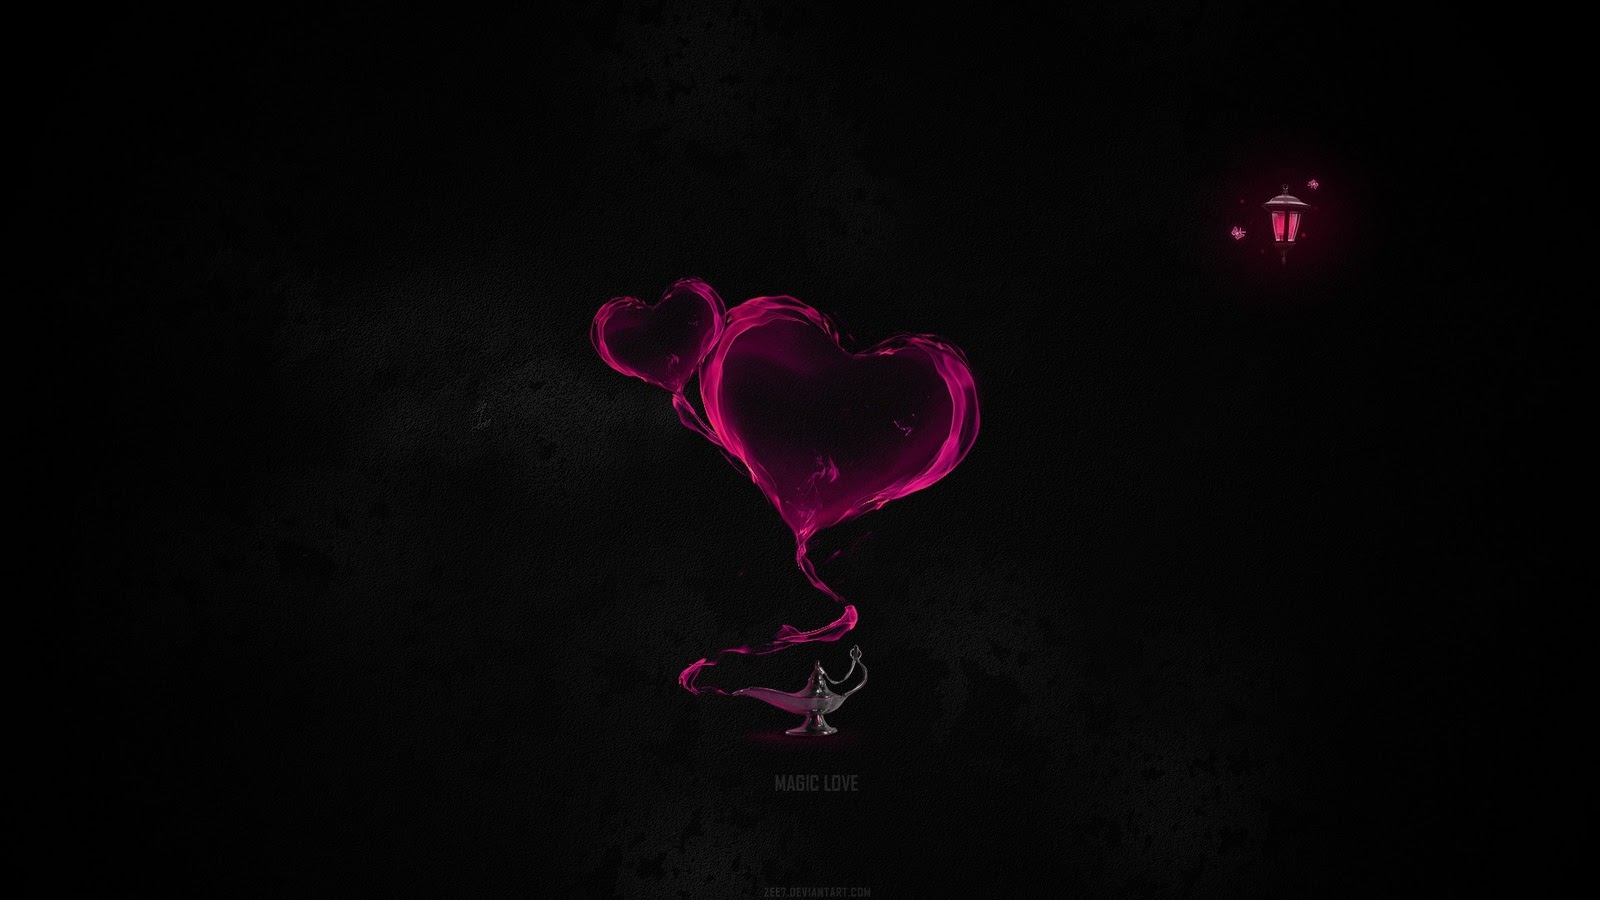 Best Love Wallpapers: THE BEST HD LOVE WALLPAPERS EVER!!!